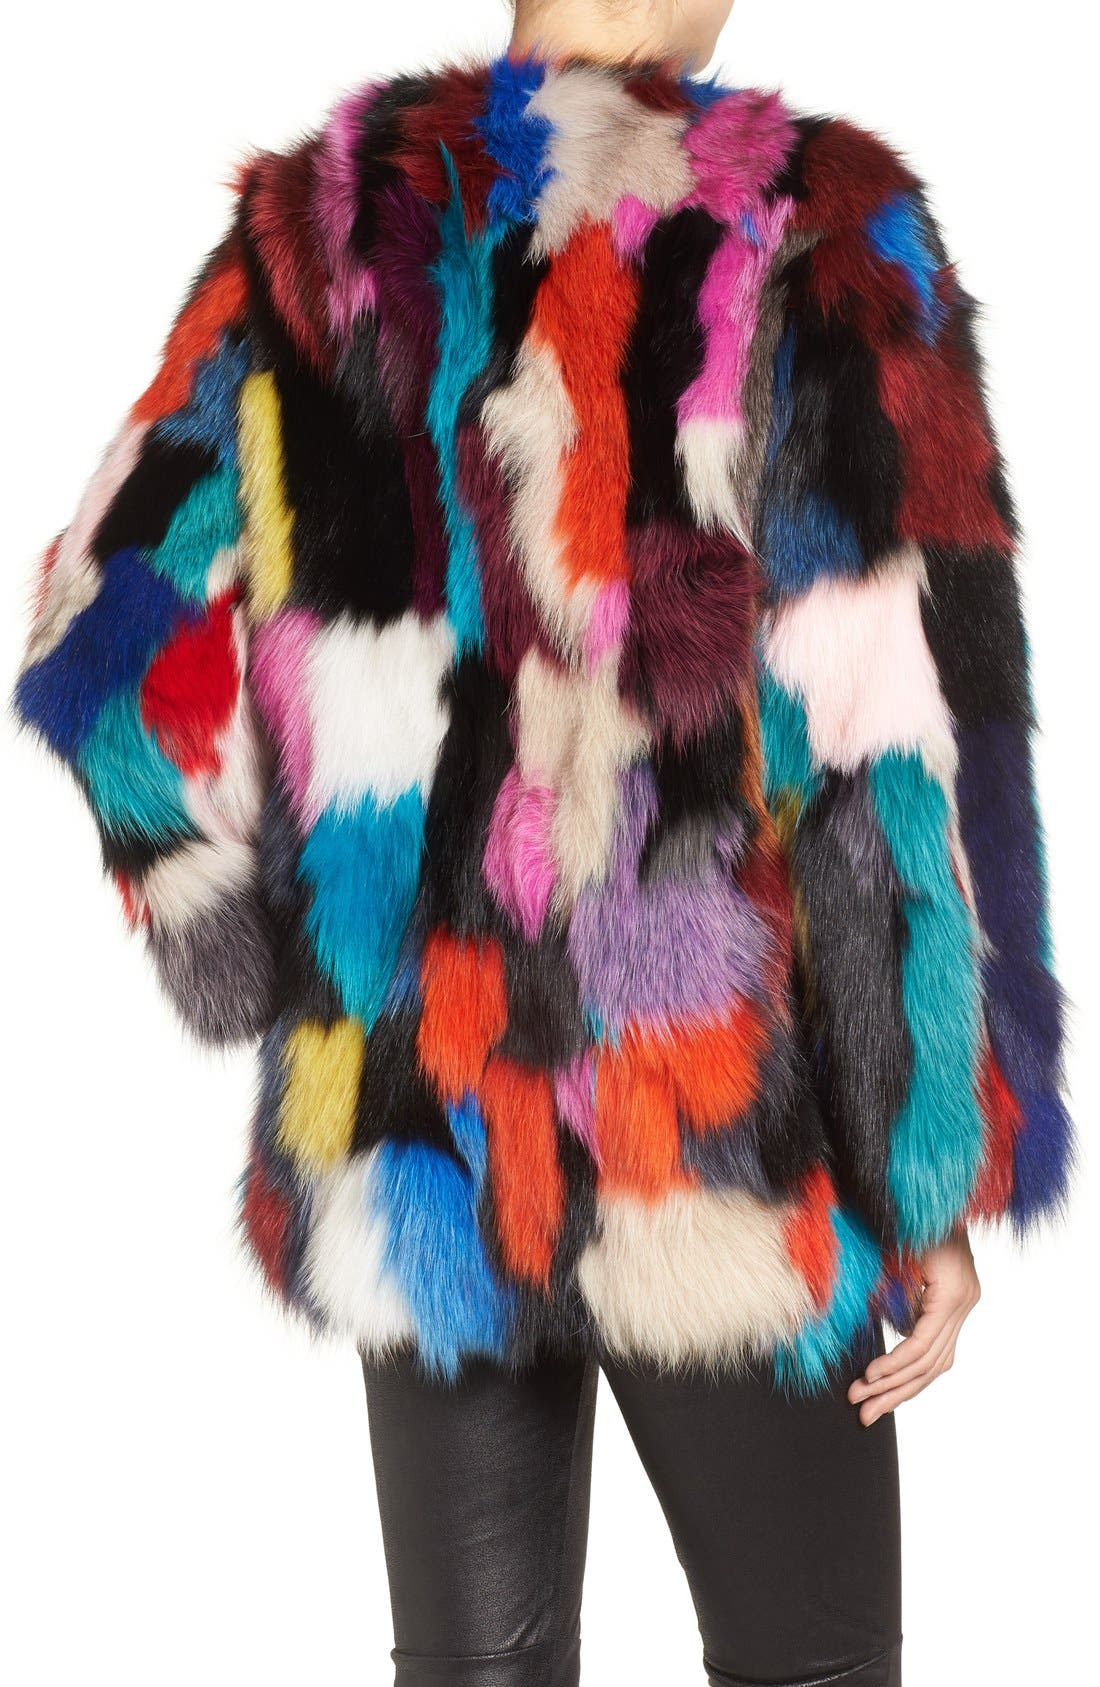 Marmalade Patchwork Genuine Fox Fur Coat,                             Alternate thumbnail 2, color,                             400